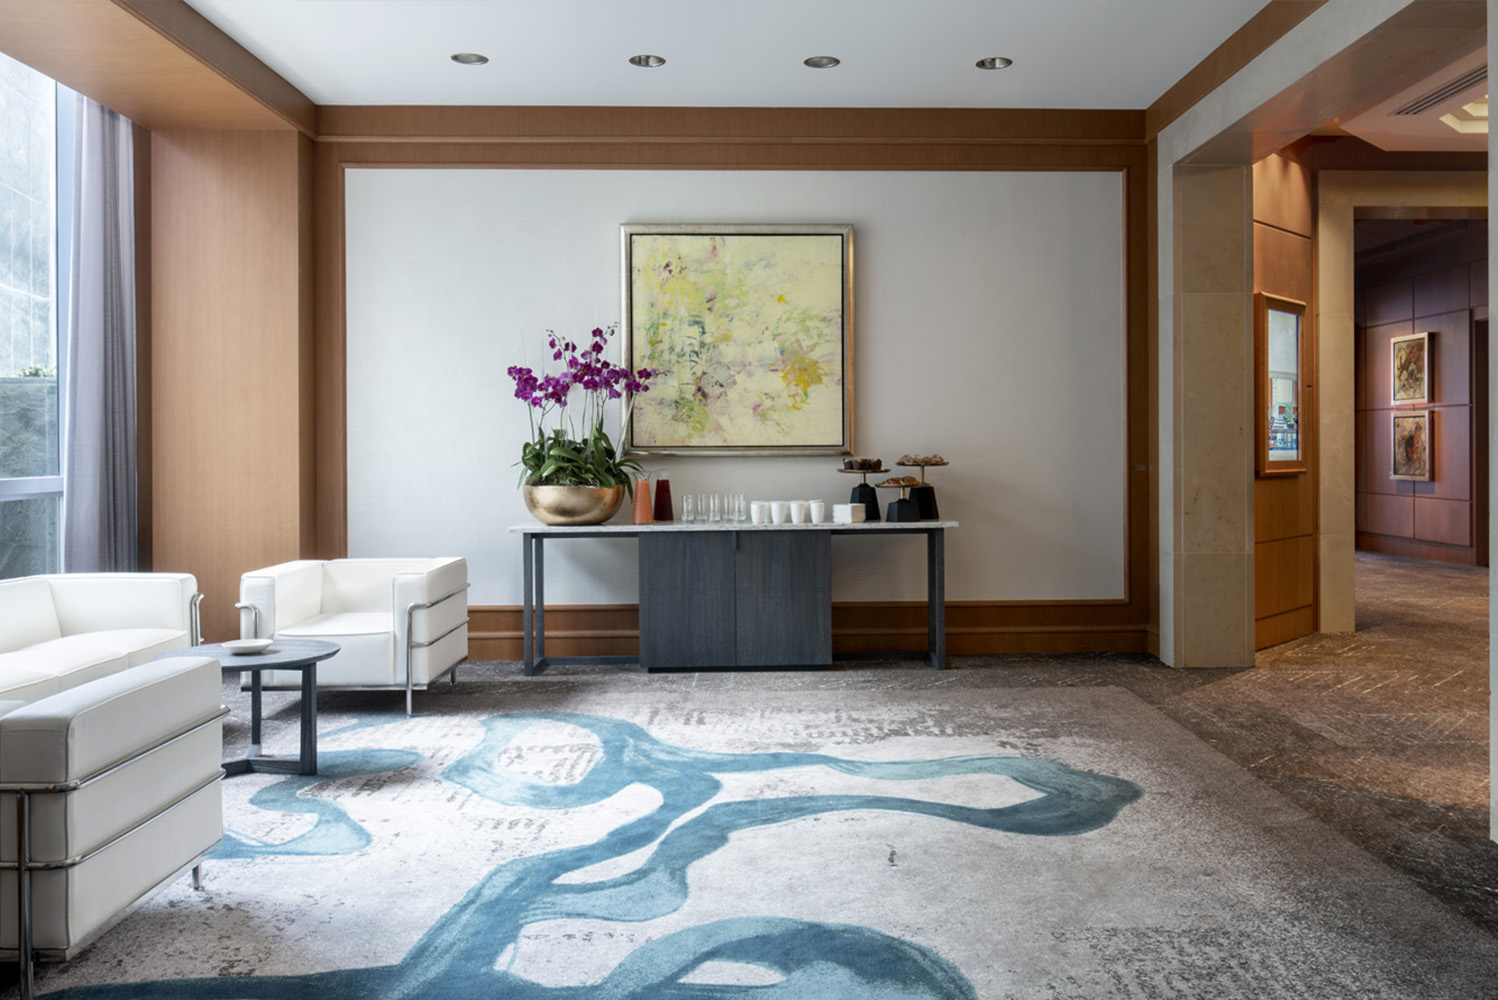 Four Seasons Hotel Miami in Brickell completed a redesign of its 6th floor function spaces as well as its 7th floor lobby that now blend with one another.